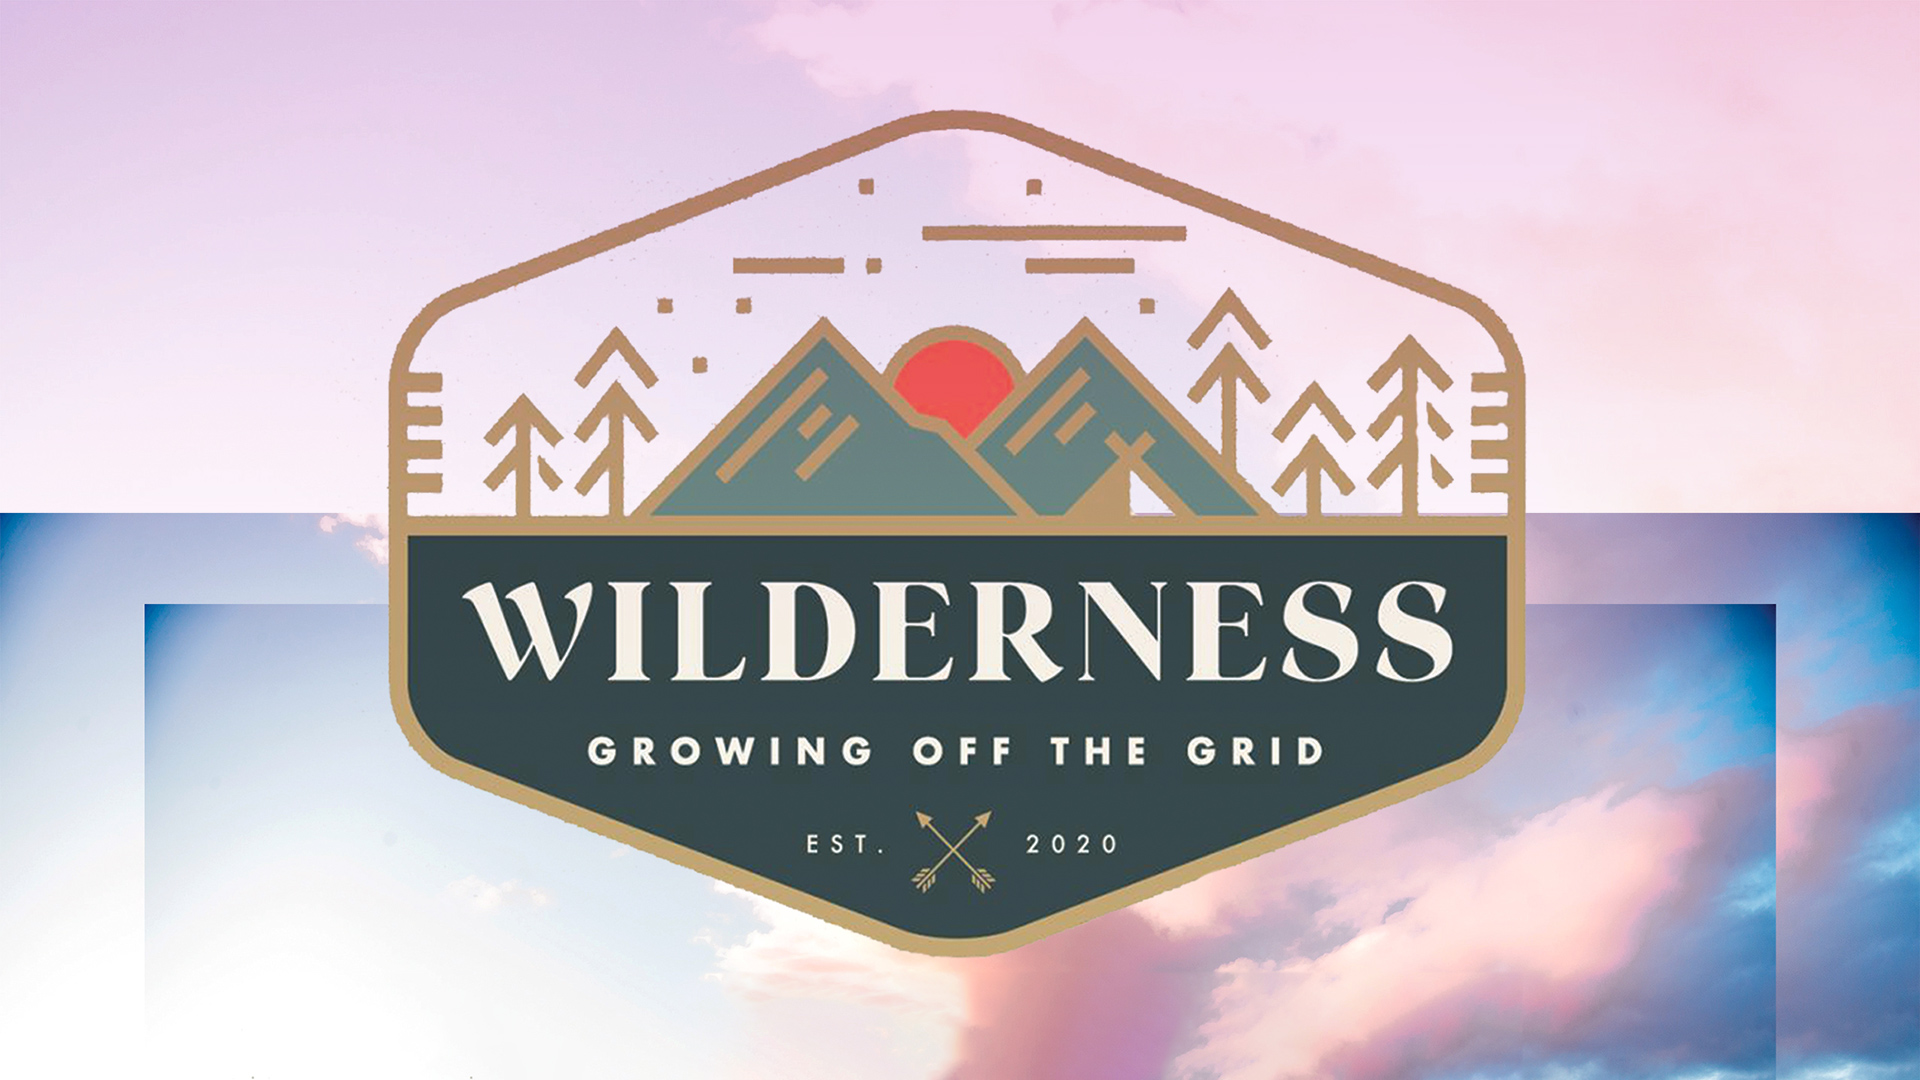 Wilderness: Growing Off the Grid